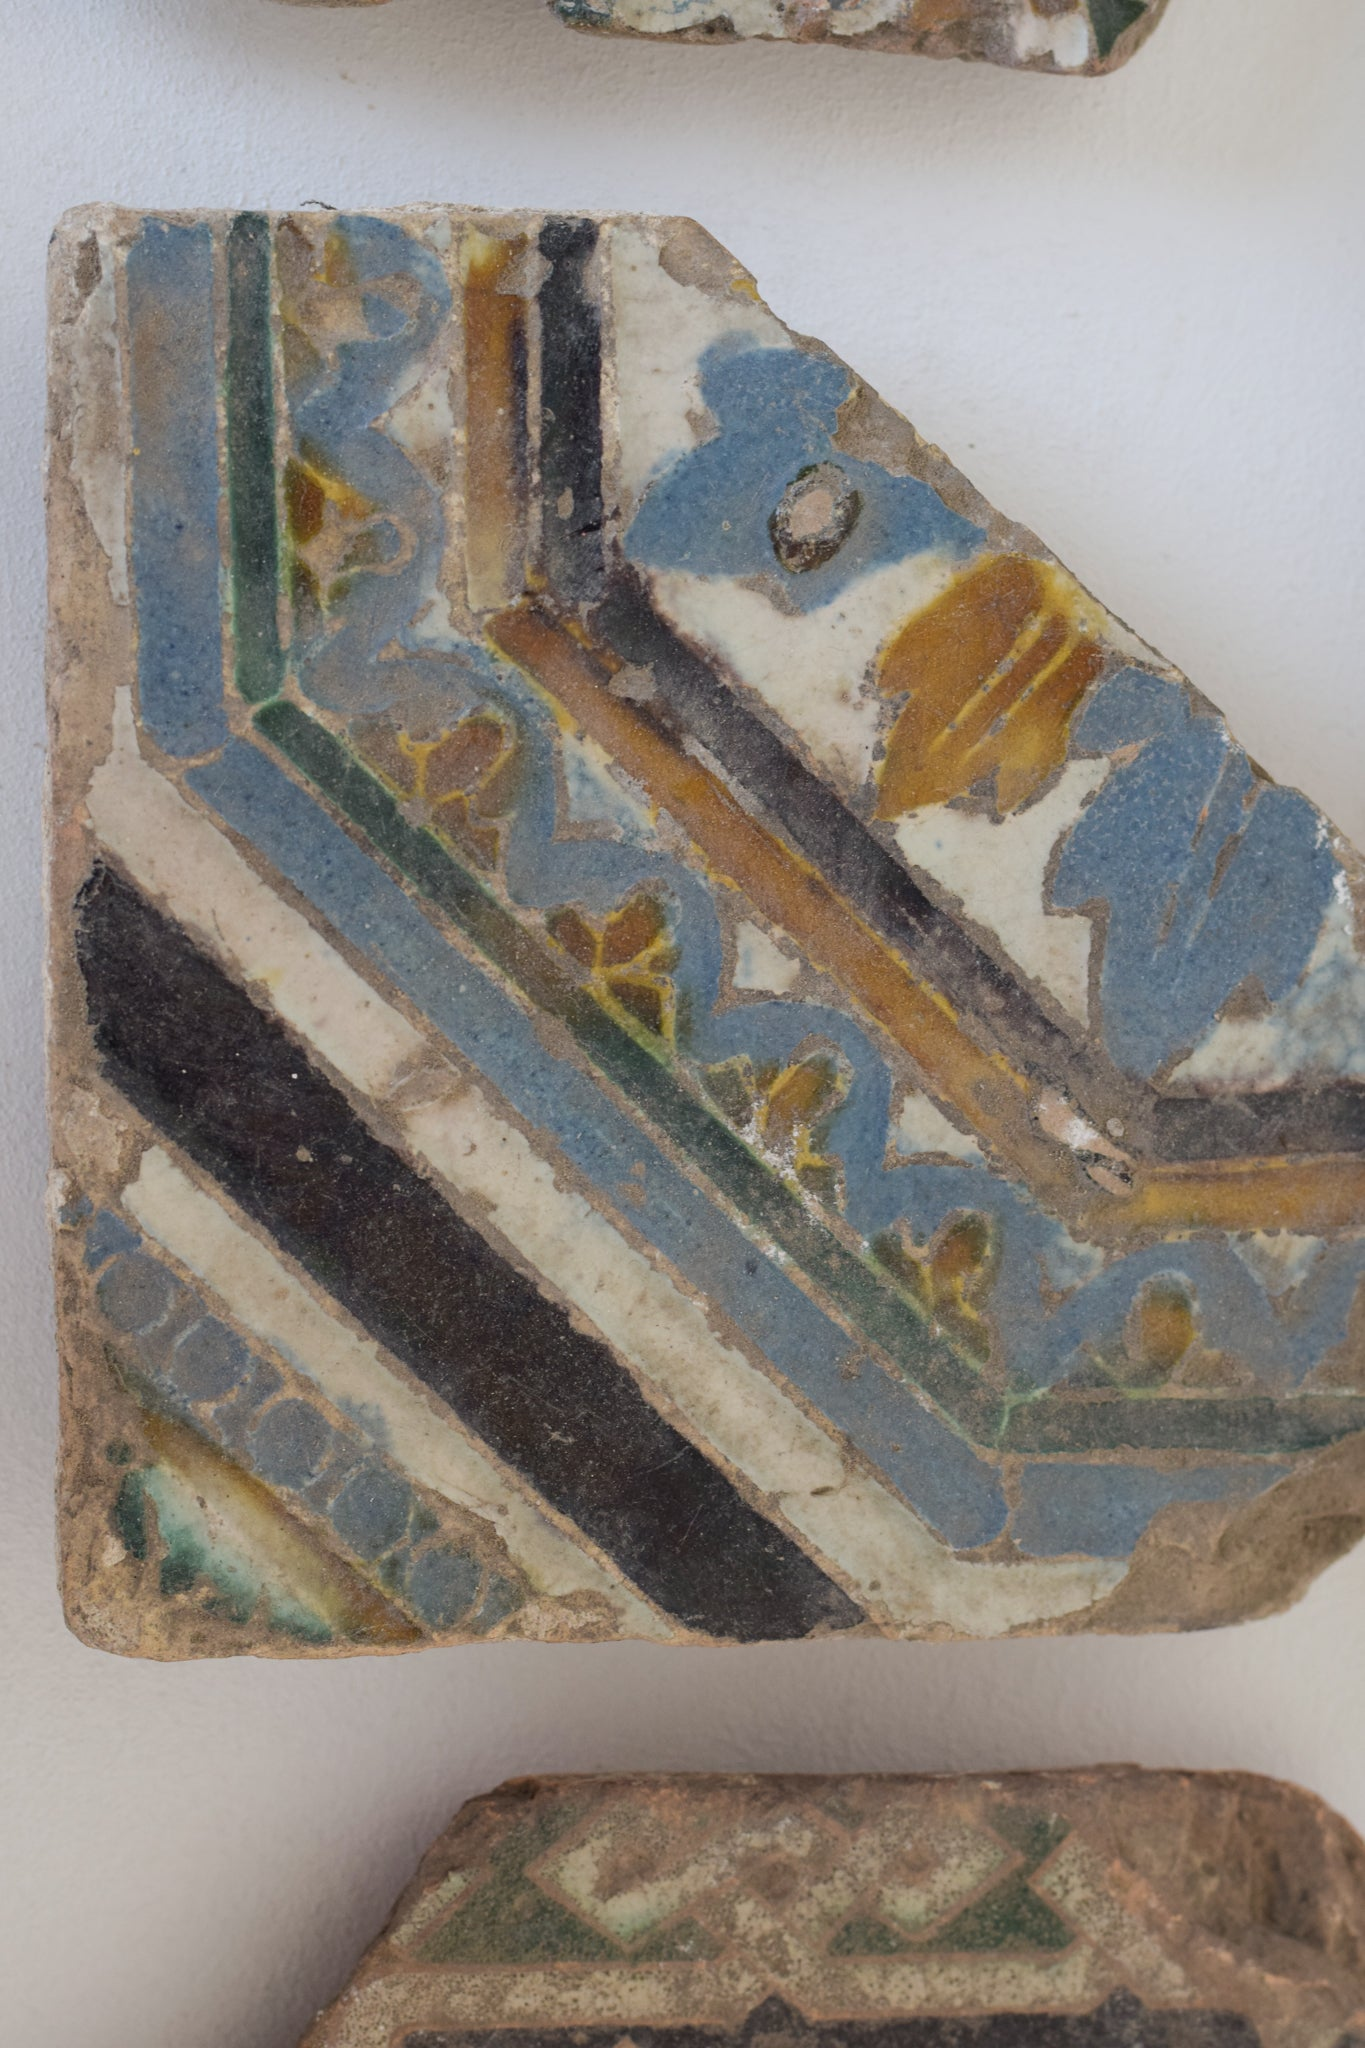 Five early majolica 17th to 18th century Tiles